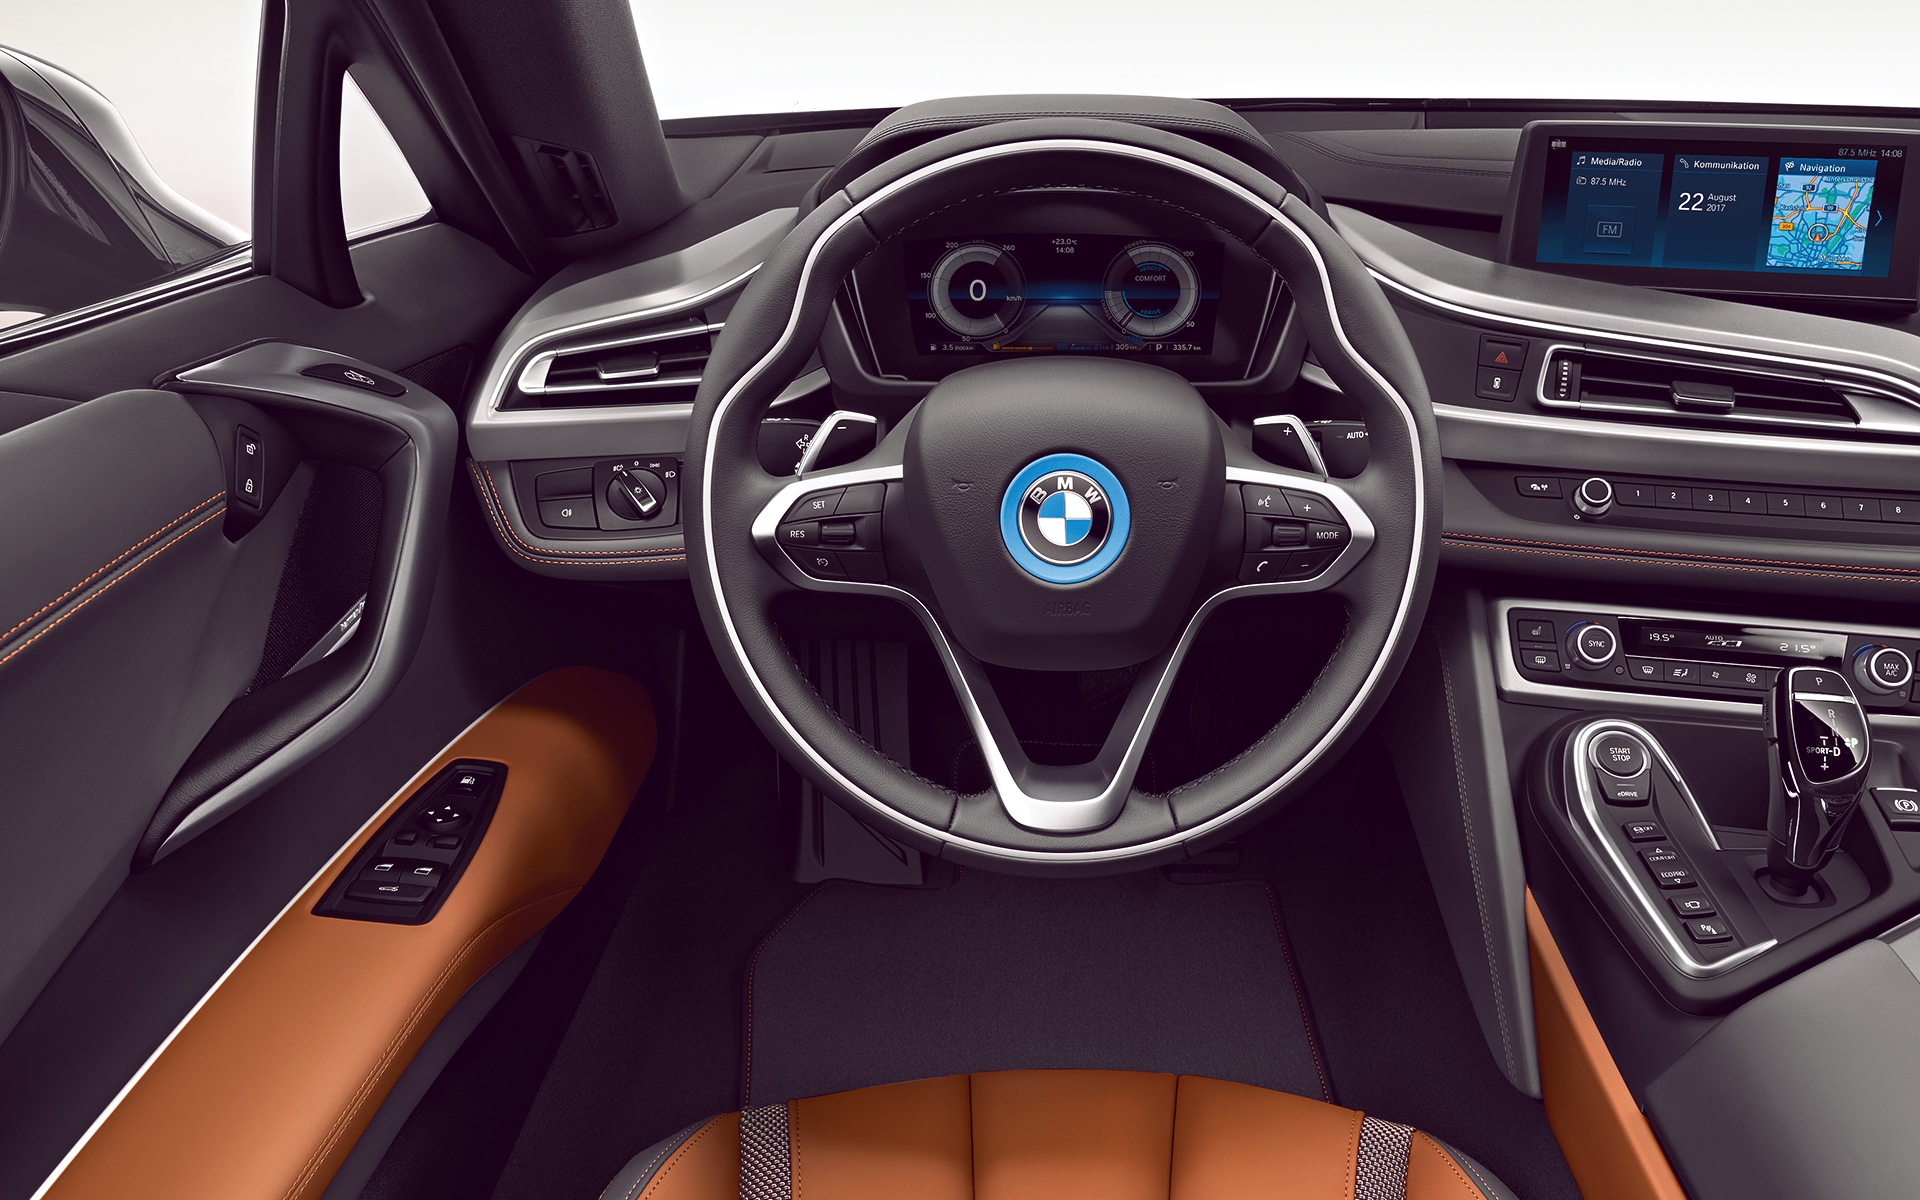 BMW i8 coupe images videos image 09